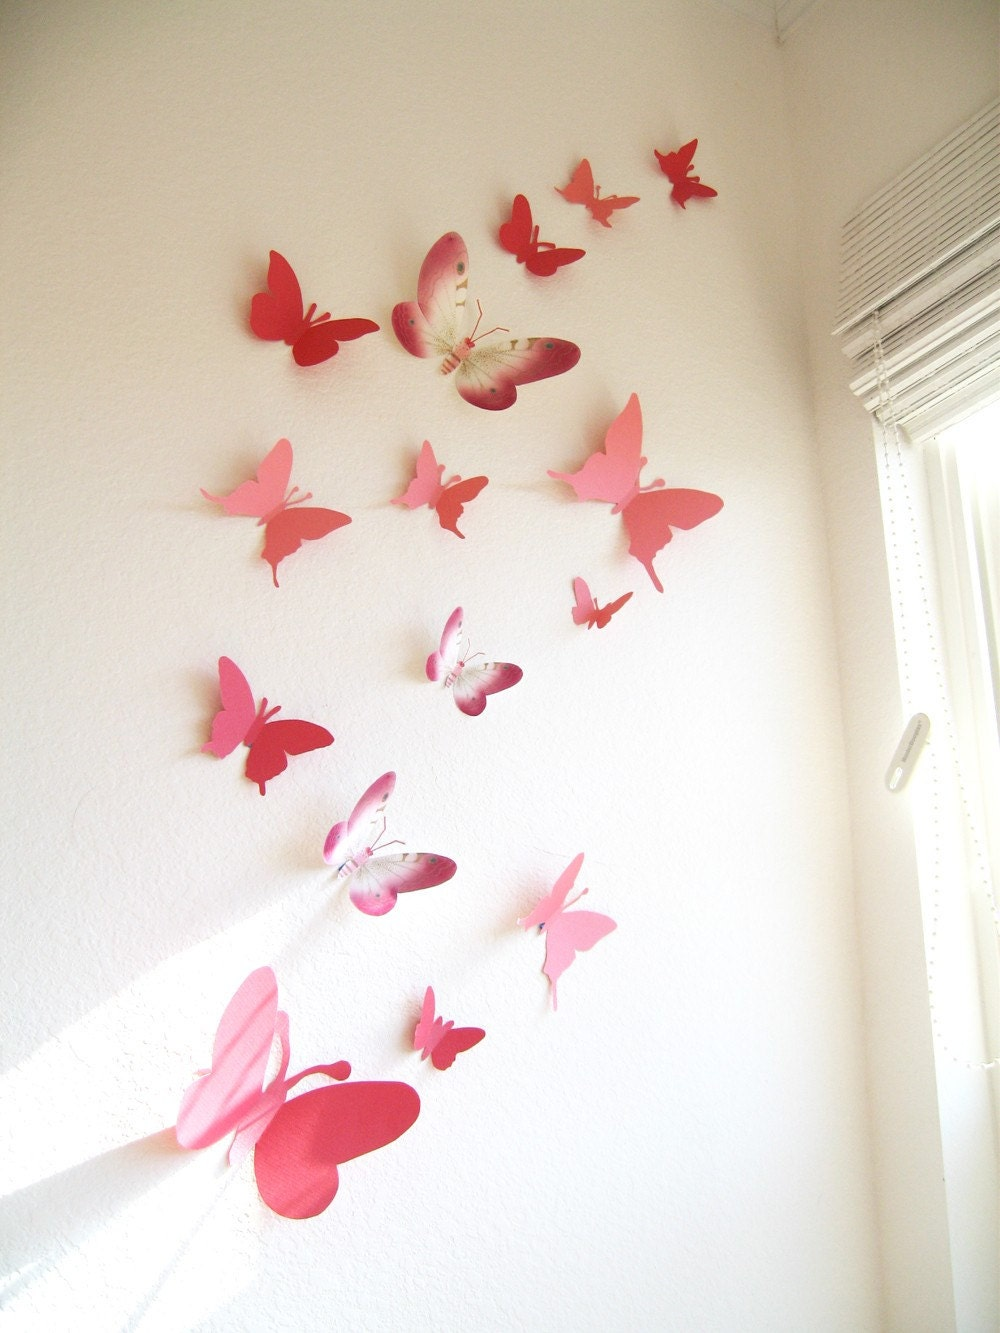 30 3D Wall Butterflies Paper Wall Decor 3DPink Red for Butterfly Wall Decor Pattern  303mzq